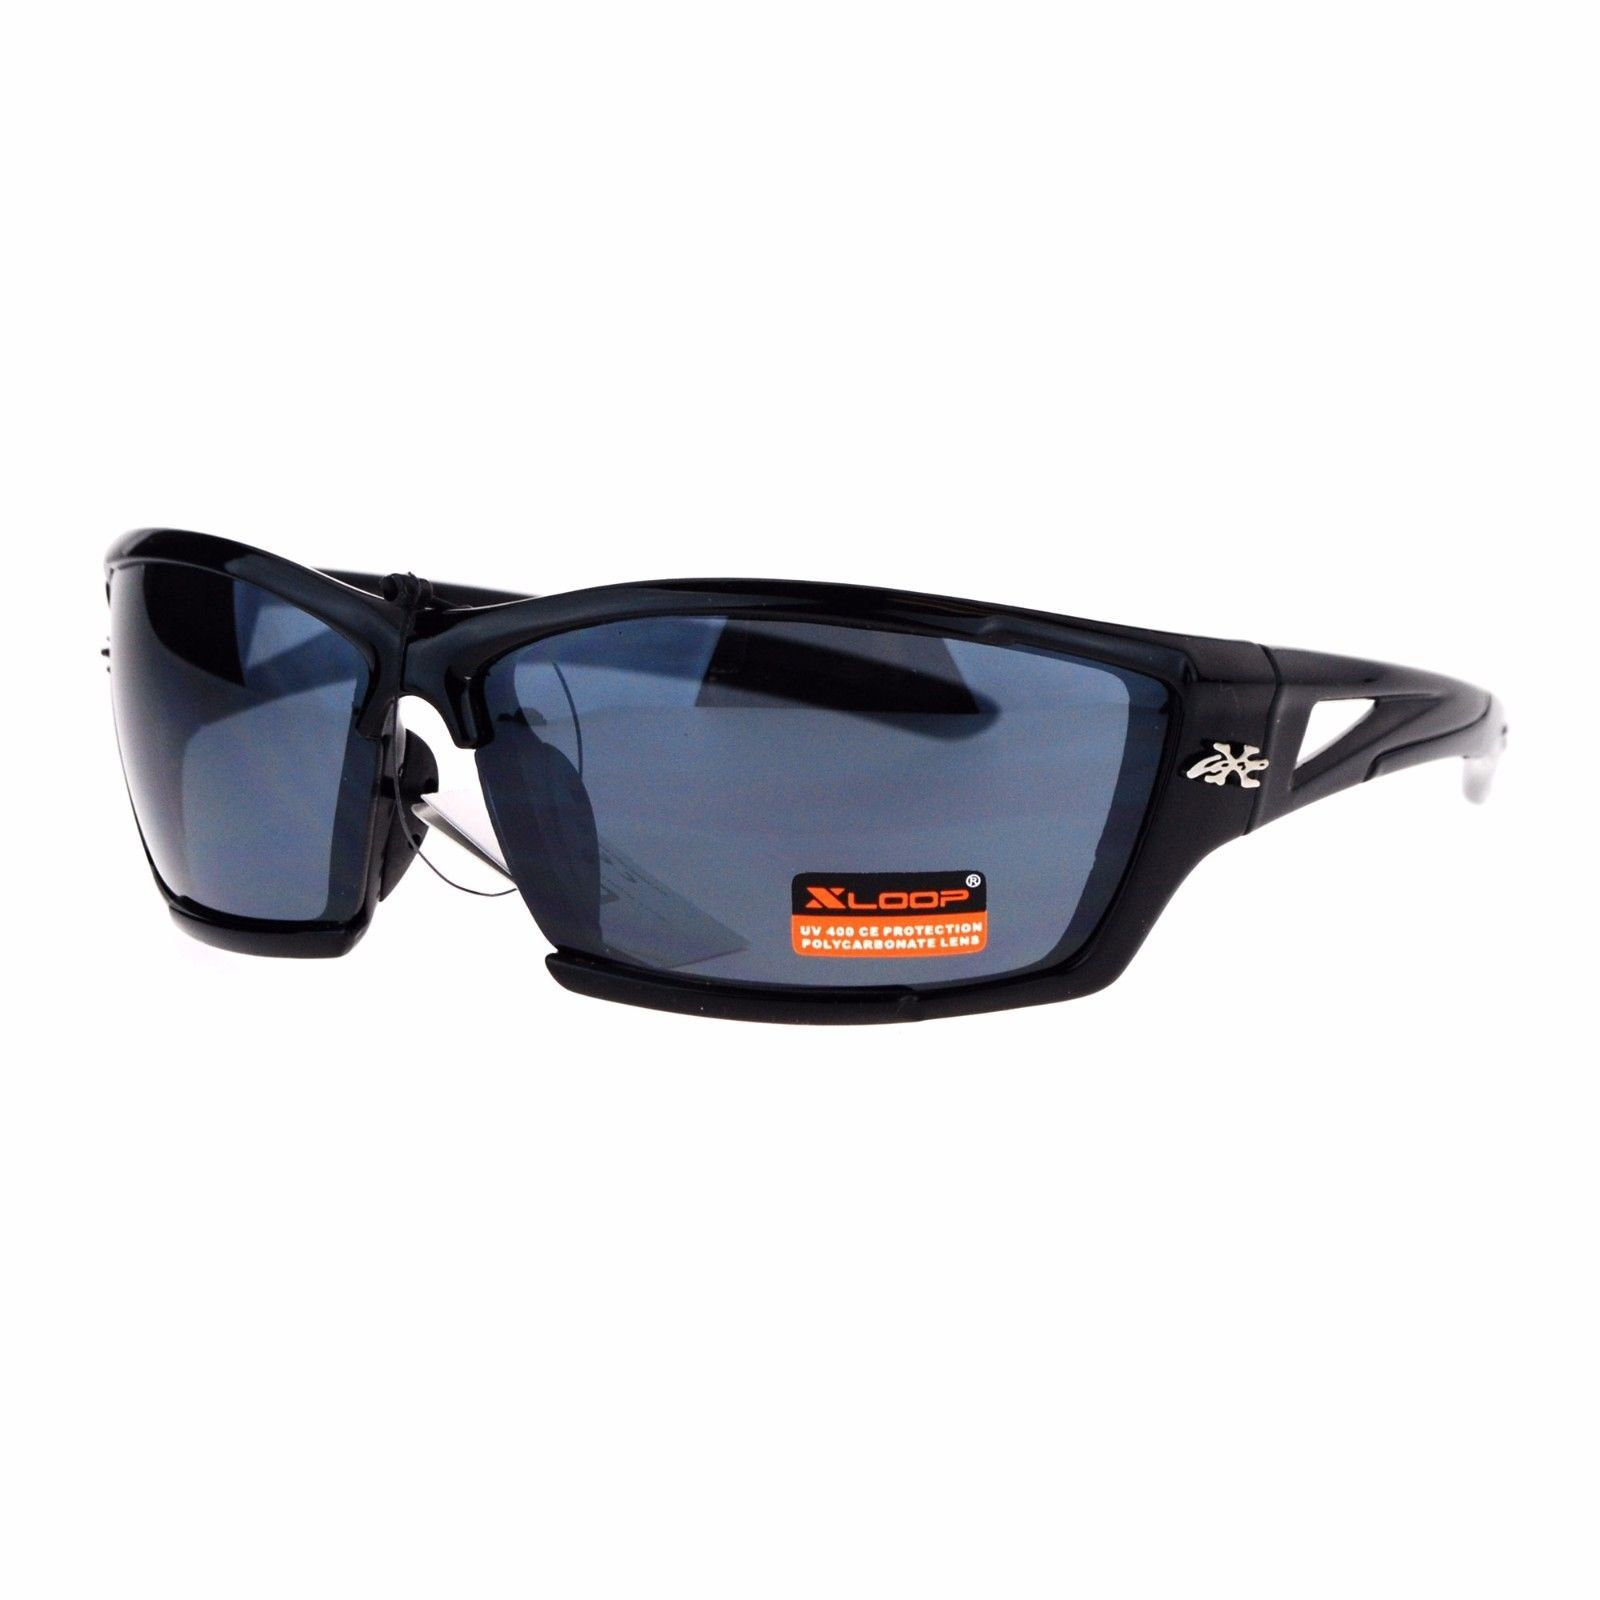 b98c58a433 57. 57. Previous. Xloop Mens Sports Sunglasses Wrap Around Rectangular  Frame UV 400. Xloop Mens Sports ...